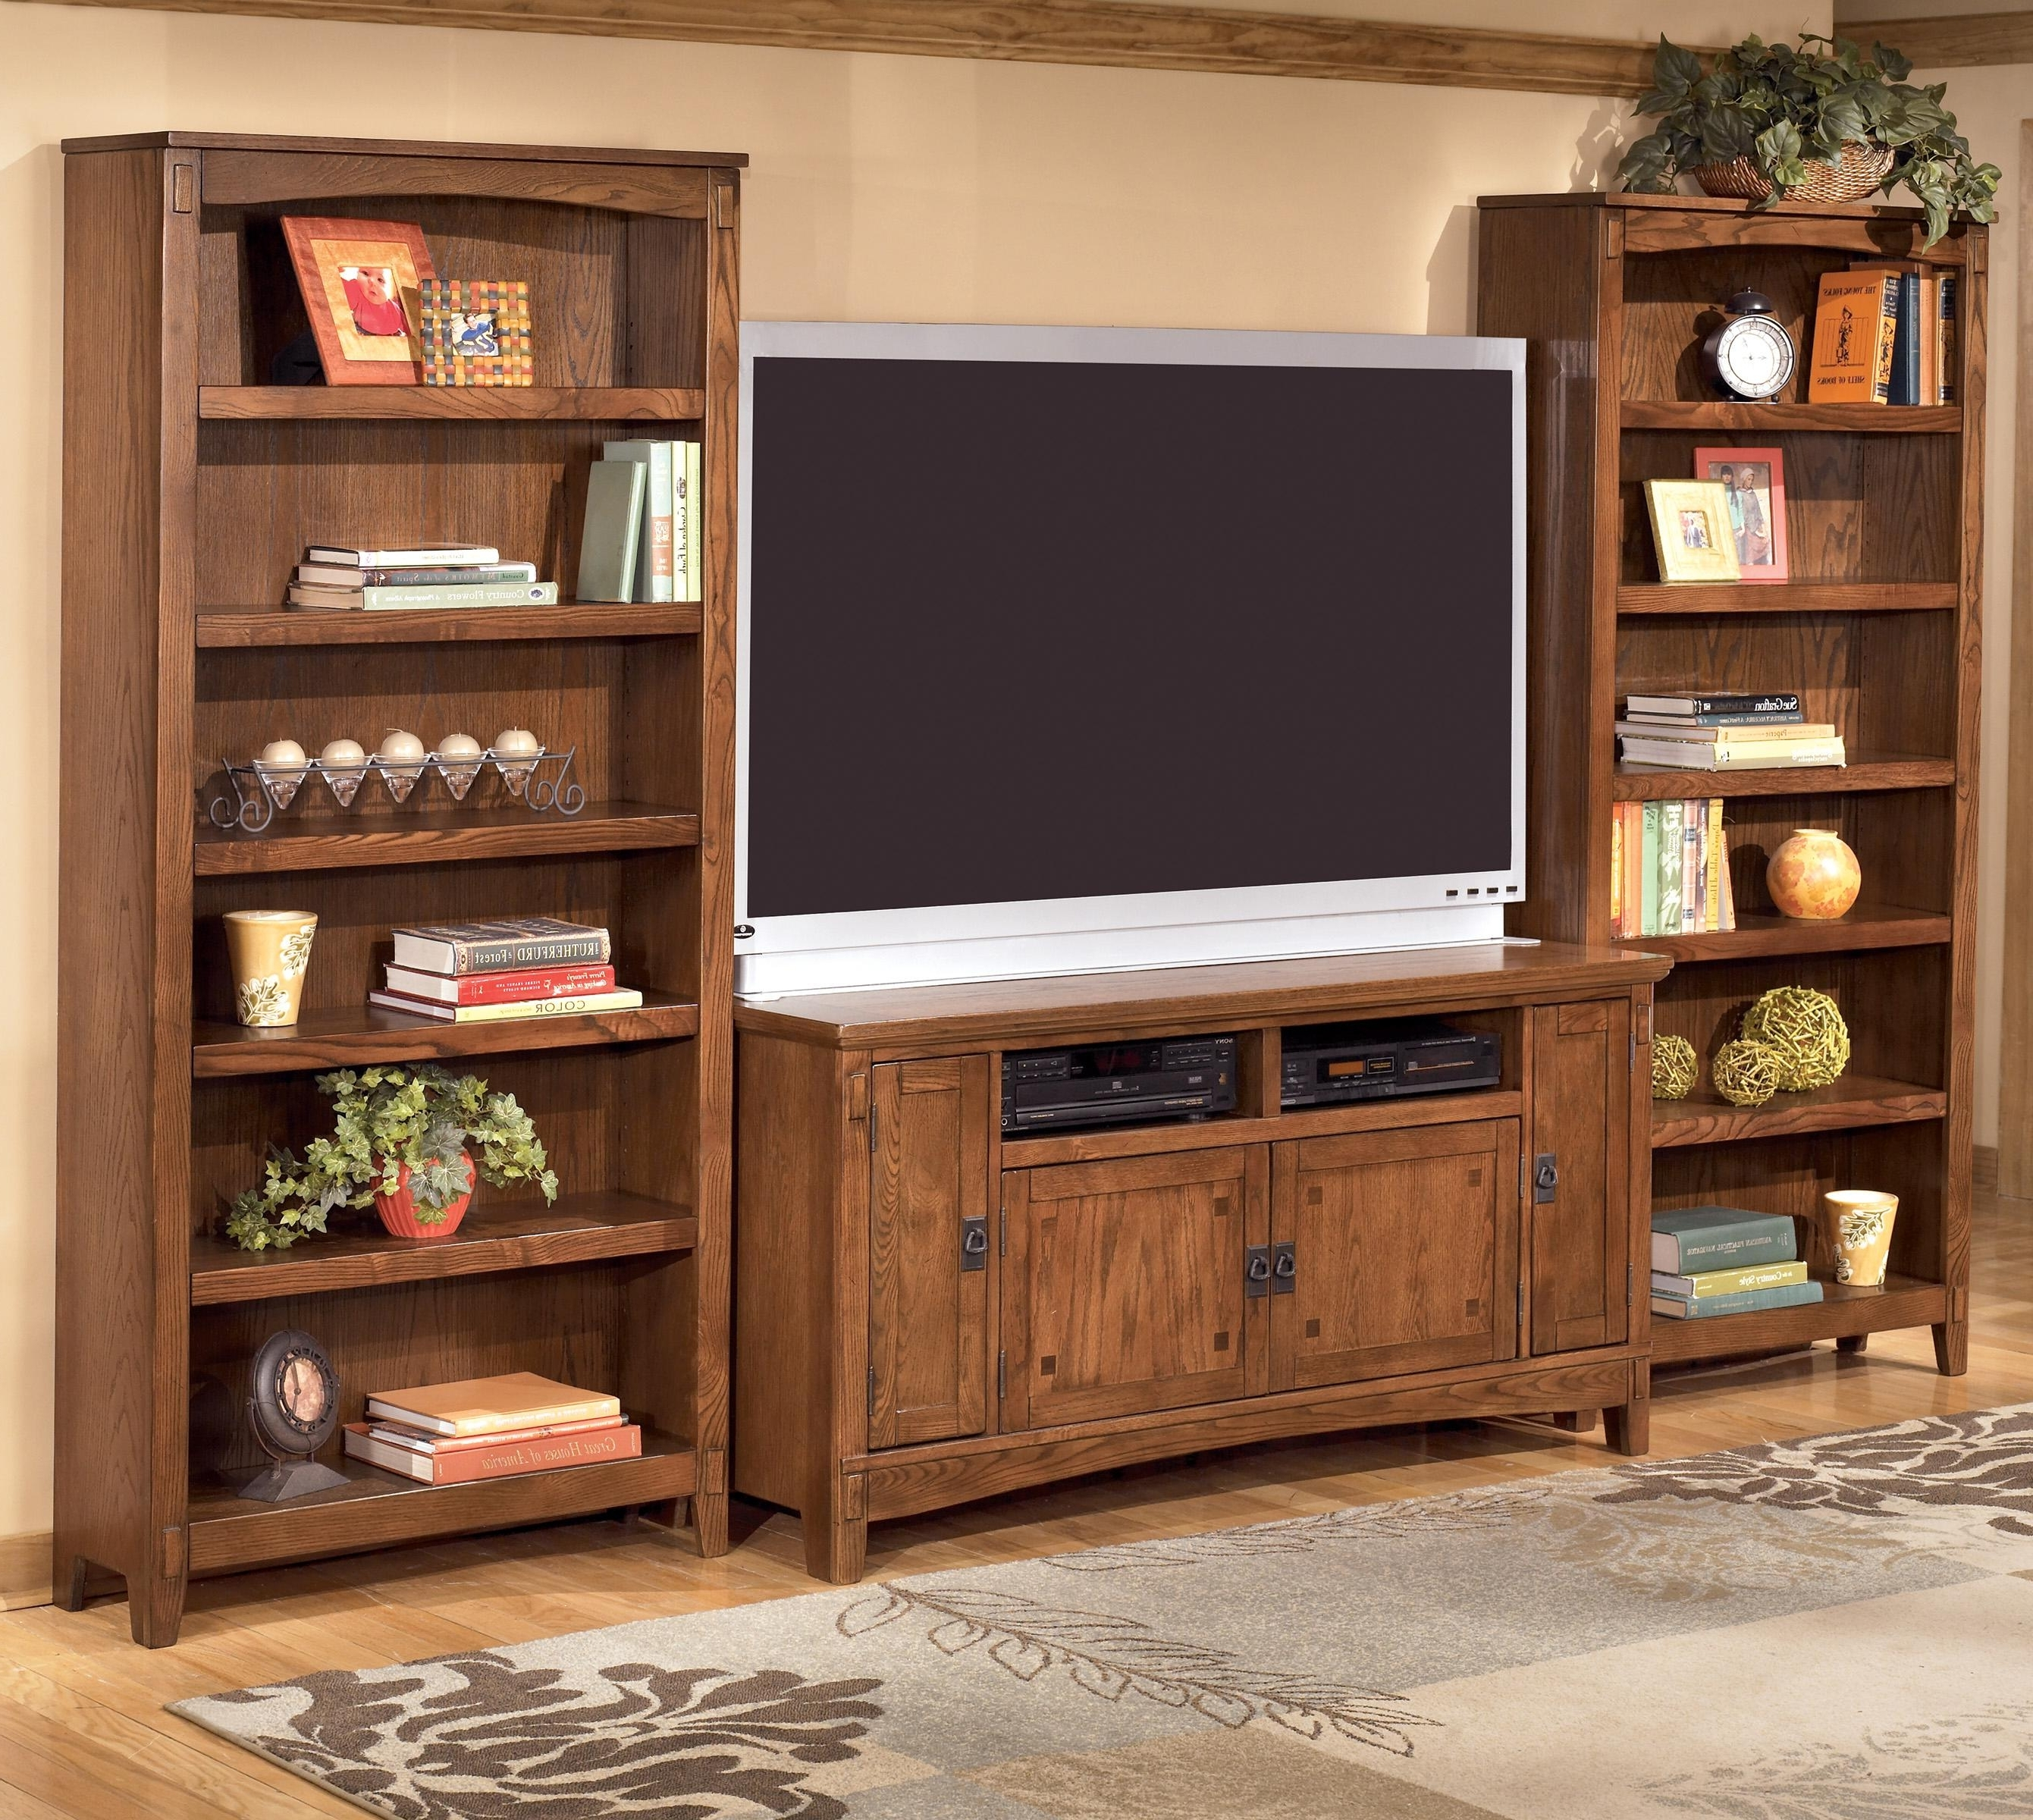 Large Bookshelves Units With Regard To Popular Wall Units: Astounding Tv Cabinet And Bookcase Tv Stand With (View 12 of 15)